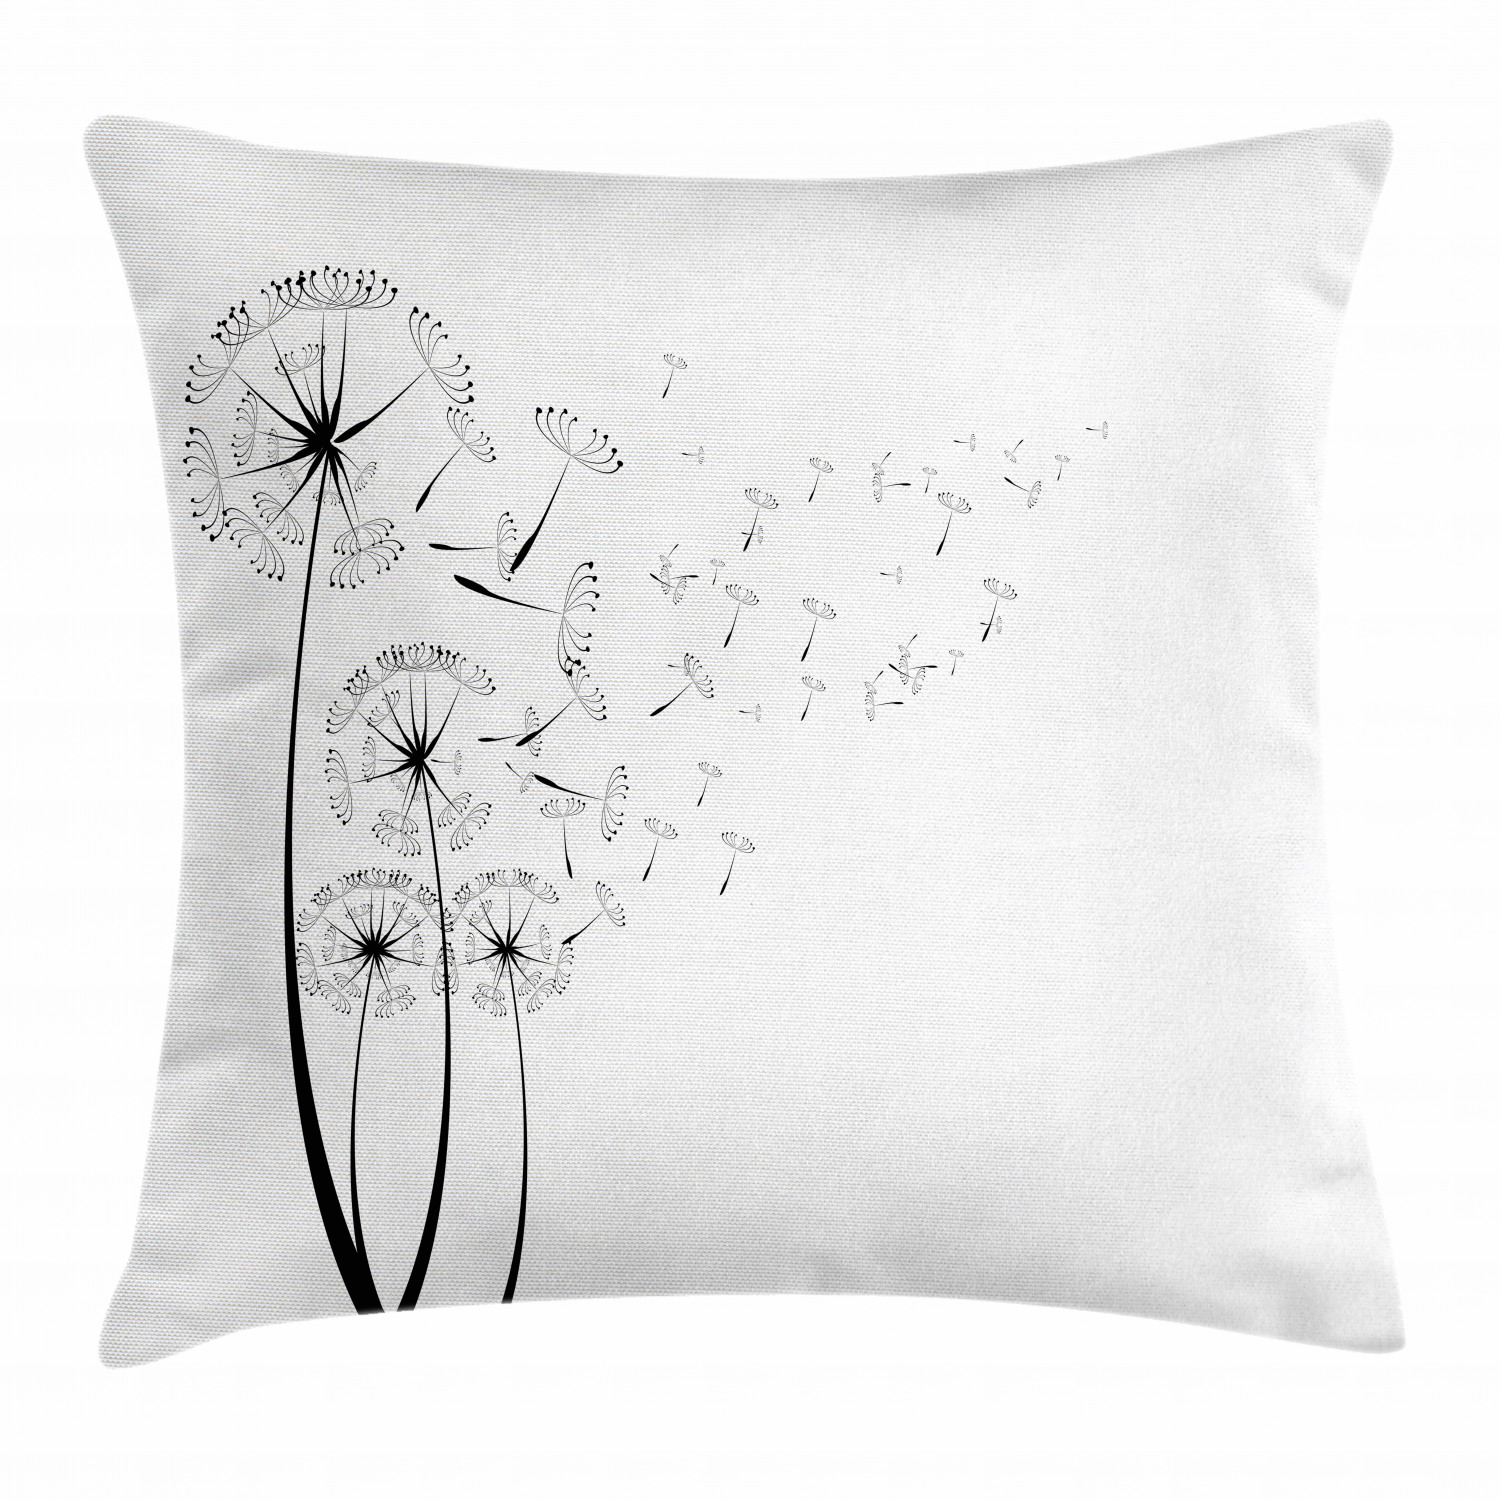 Dandelion Throw Pillow Cushion Cover Monochrome Dandelions With Seeds Blowing In The Wind Fluffy Flower Romance Theme Decorative Square Accent Pillow Case 16 X 16 Inches Black White By Ambesonne Walmart Com